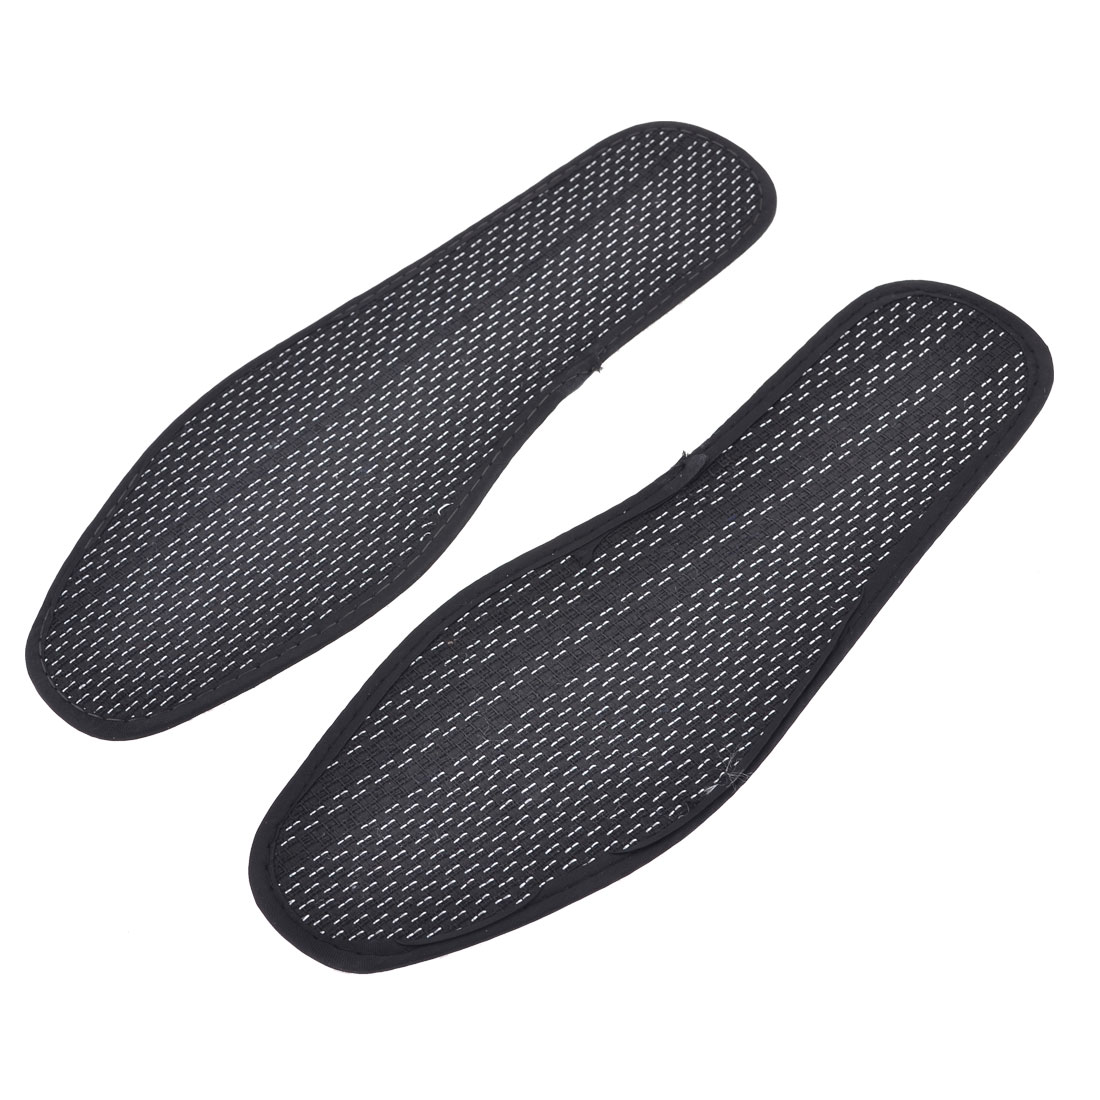 Pair Polyester Insoles Shoe Pads Black White US Size 7.5 for Man